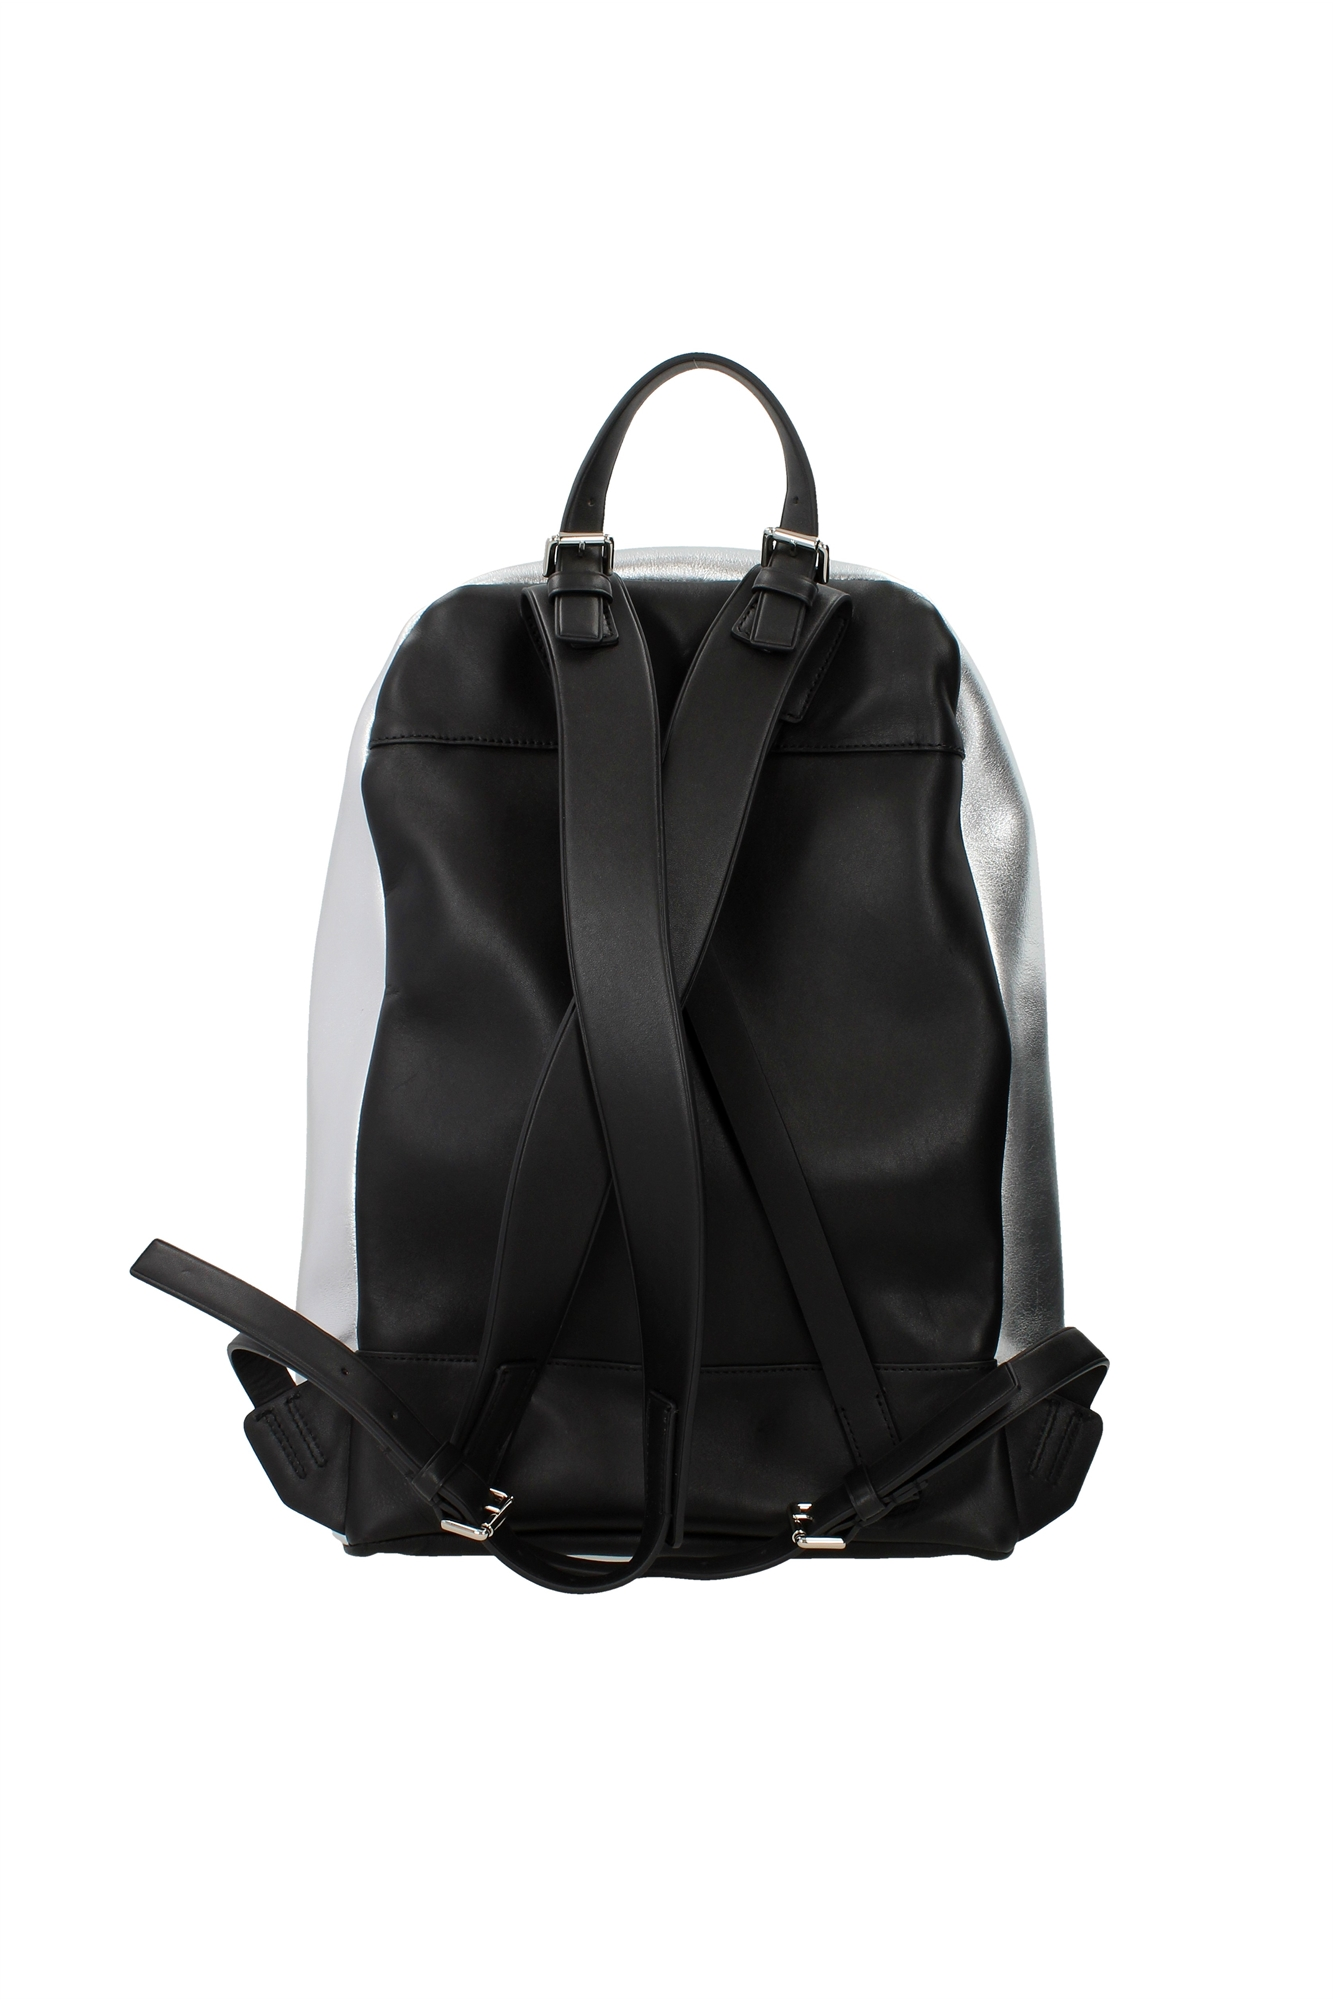 tasche rucksack 3 1 phillip lim herren leder silber ah15b015mnpmetallictin ebay. Black Bedroom Furniture Sets. Home Design Ideas